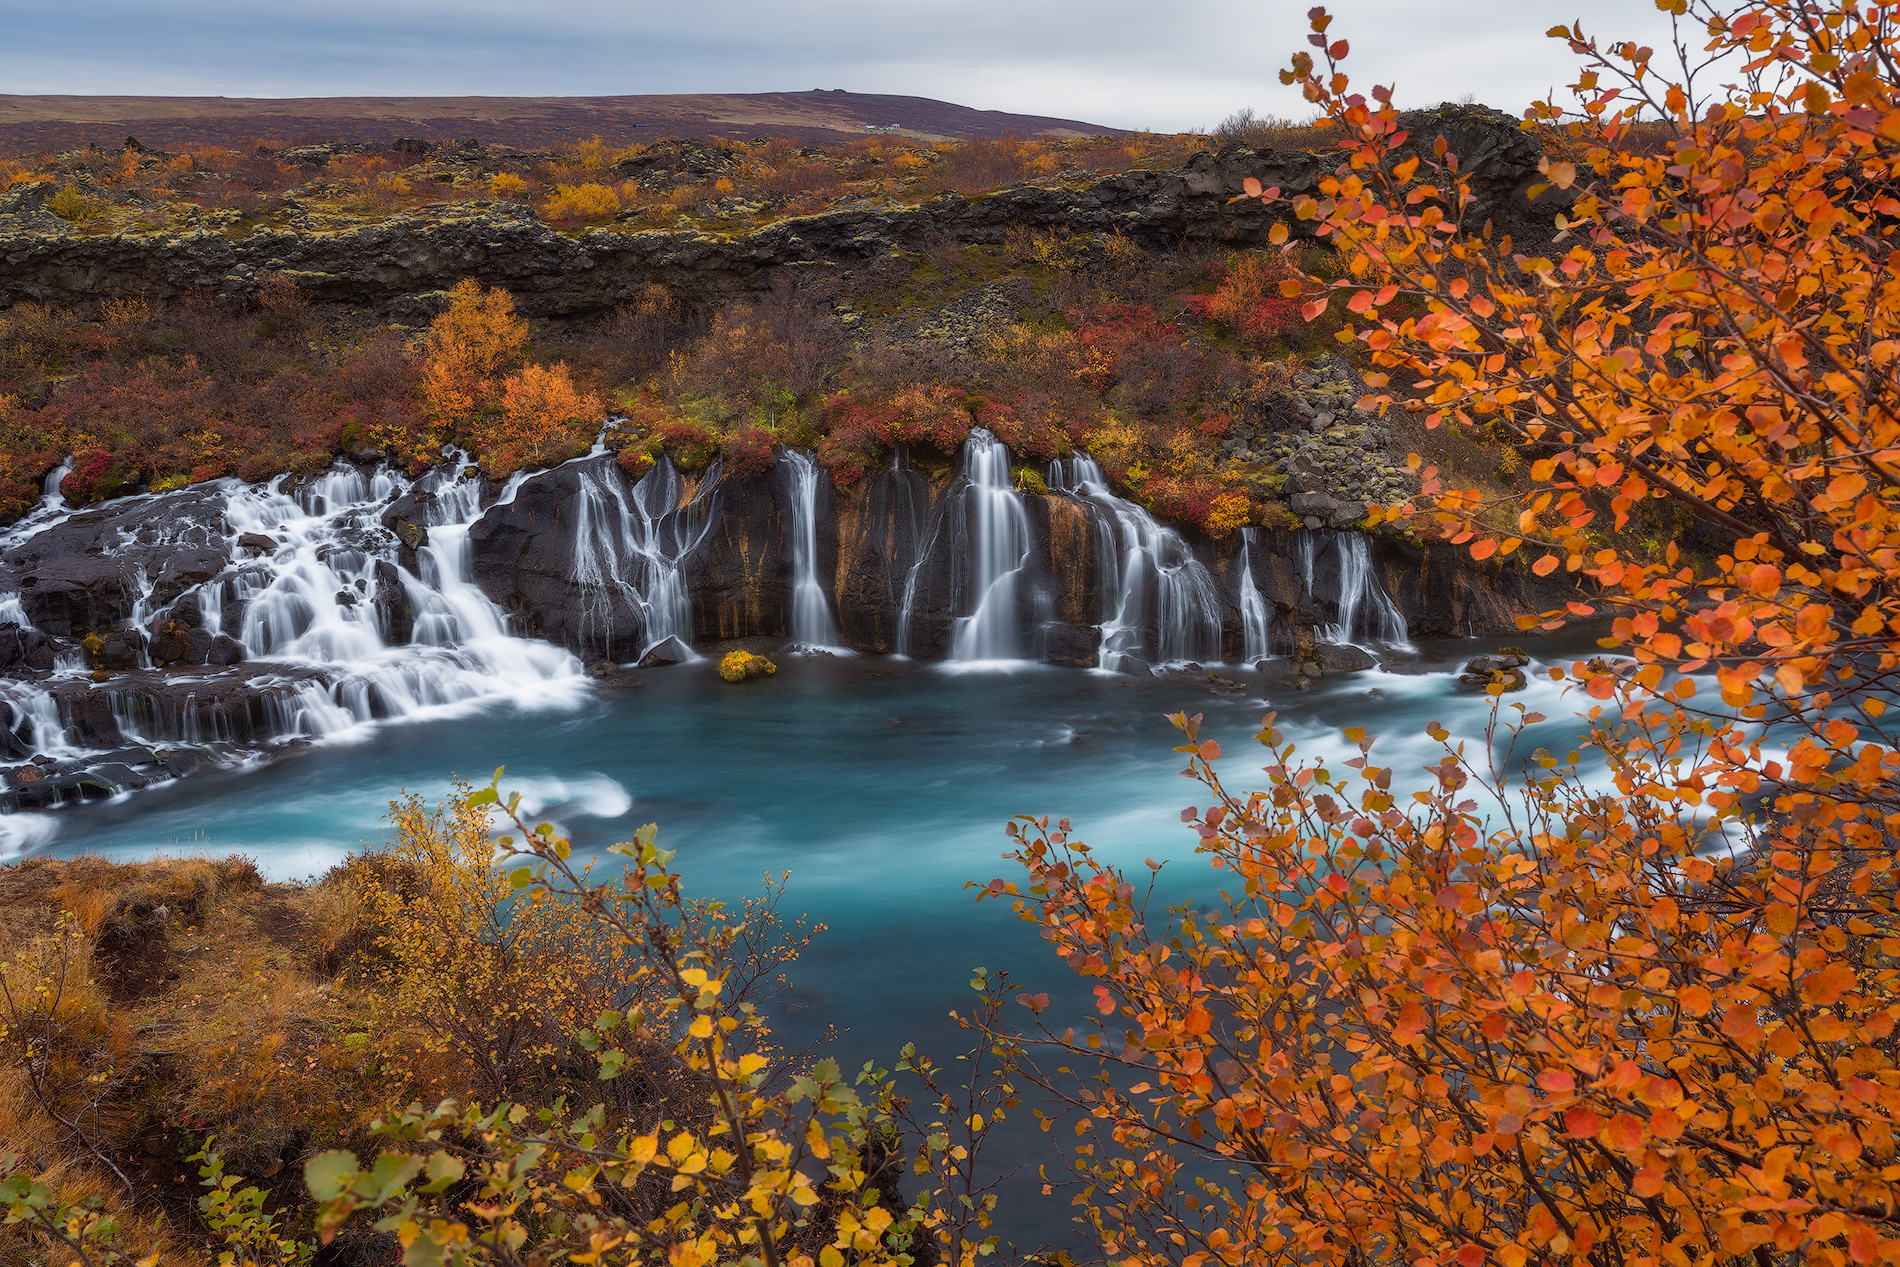 Hraunfossar waterfall is located in the West of Iceland and it's a long series of gently flowing rivulets.